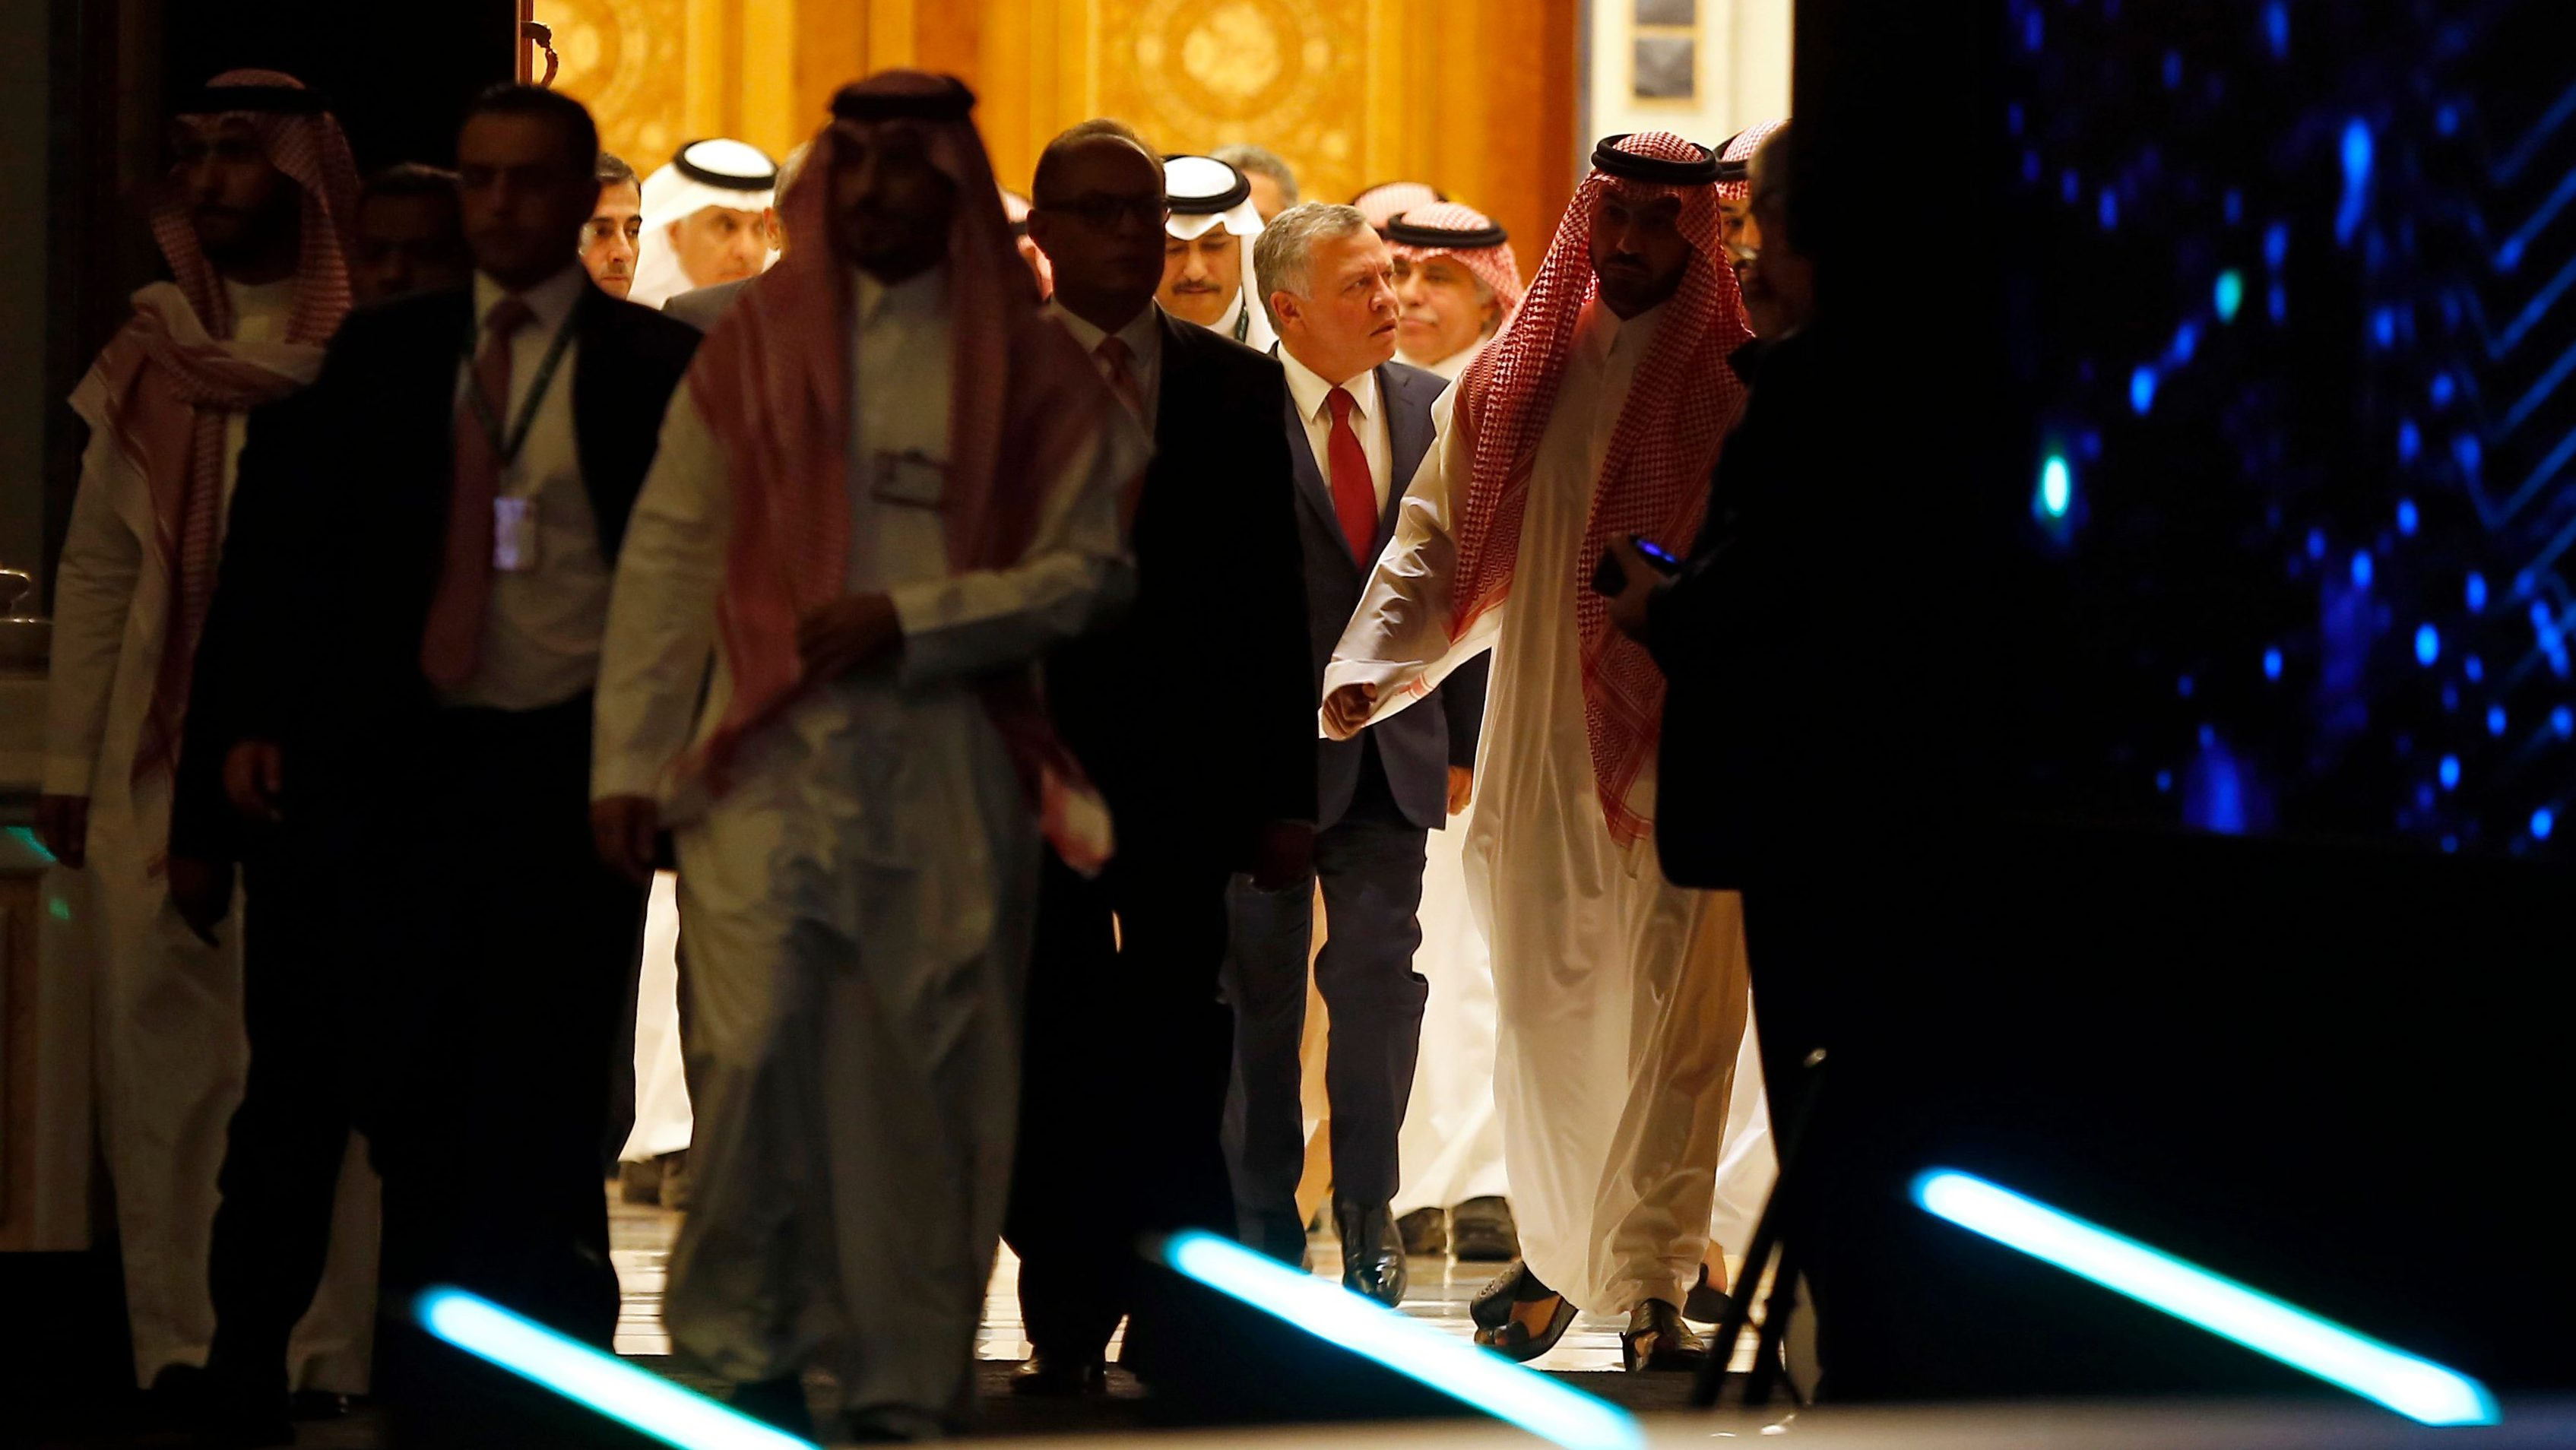 Jordan's King Abdullah II, center, enters the Future Investment Initiative conference hall, in Riyadh, Saudi Arabia, Tuesday, Oct. 23, 2018. The high-profile economic forum in Saudi Arabia is the kingdom's first major event on the world stage since the killing of writer Jamal Khashoggi at the Saudi Consulate in Istanbul earlier this month. (AP Photo/Amr Nabil)